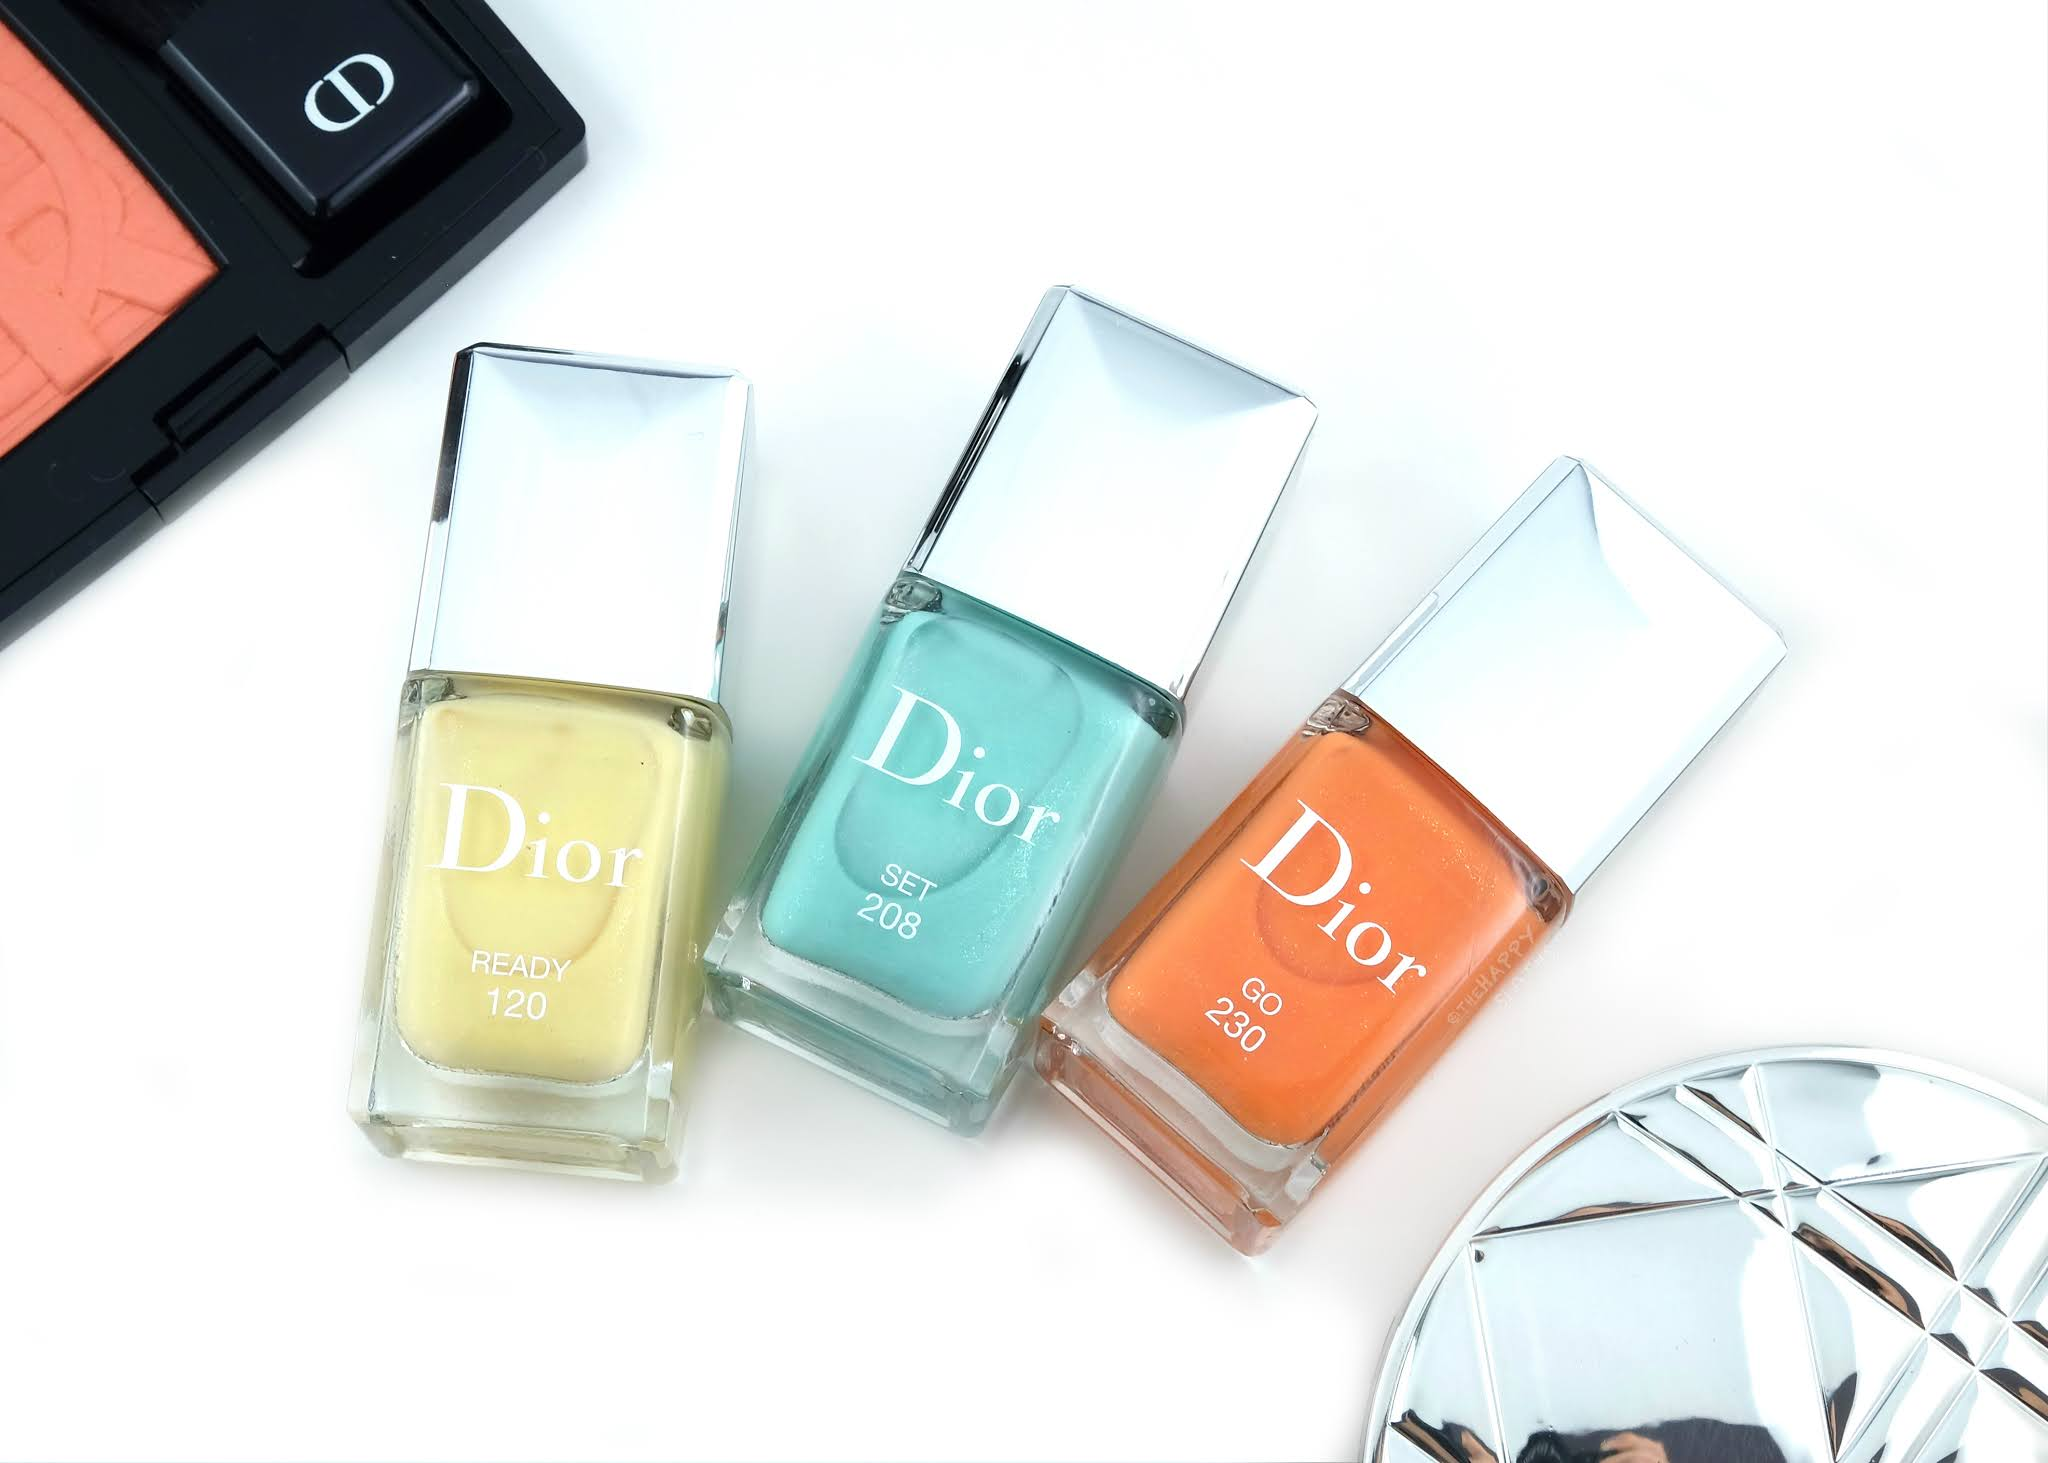 Dior Summer 2020 | Dior Vernis Color Games Nail Lacquer: Review and Swatches